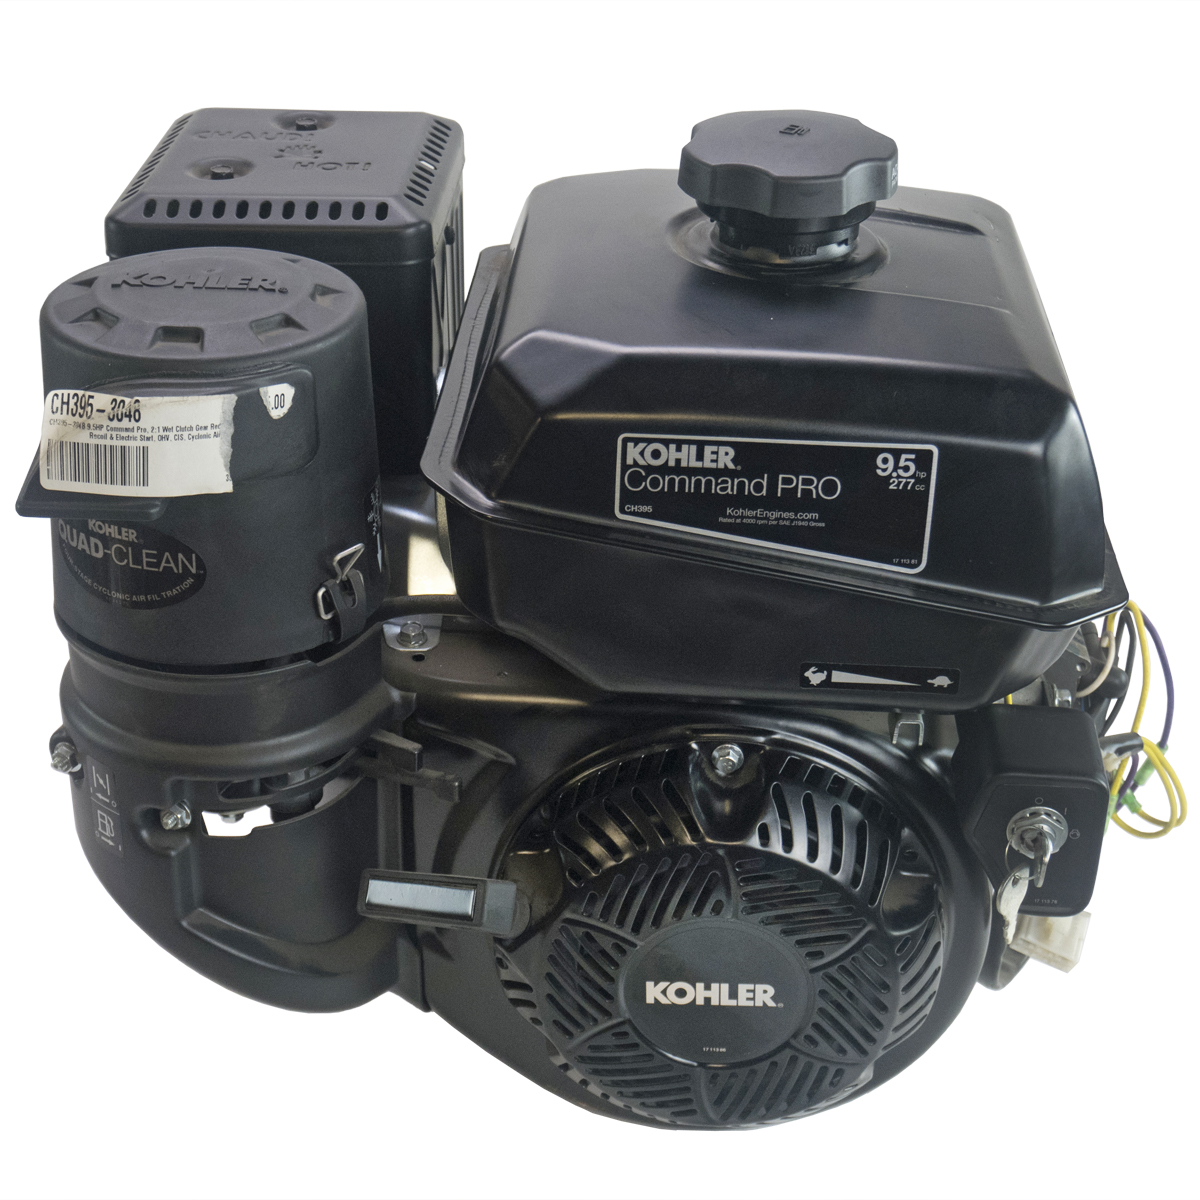 9.5HP Command Pro, 2:1 Wet Clutch Gear Reduction Horizontal 25mm Shaft, Recoil & Electric Start, 18 Amp Alt, OHV, CIS, Cyclonic Air Kohler Engine